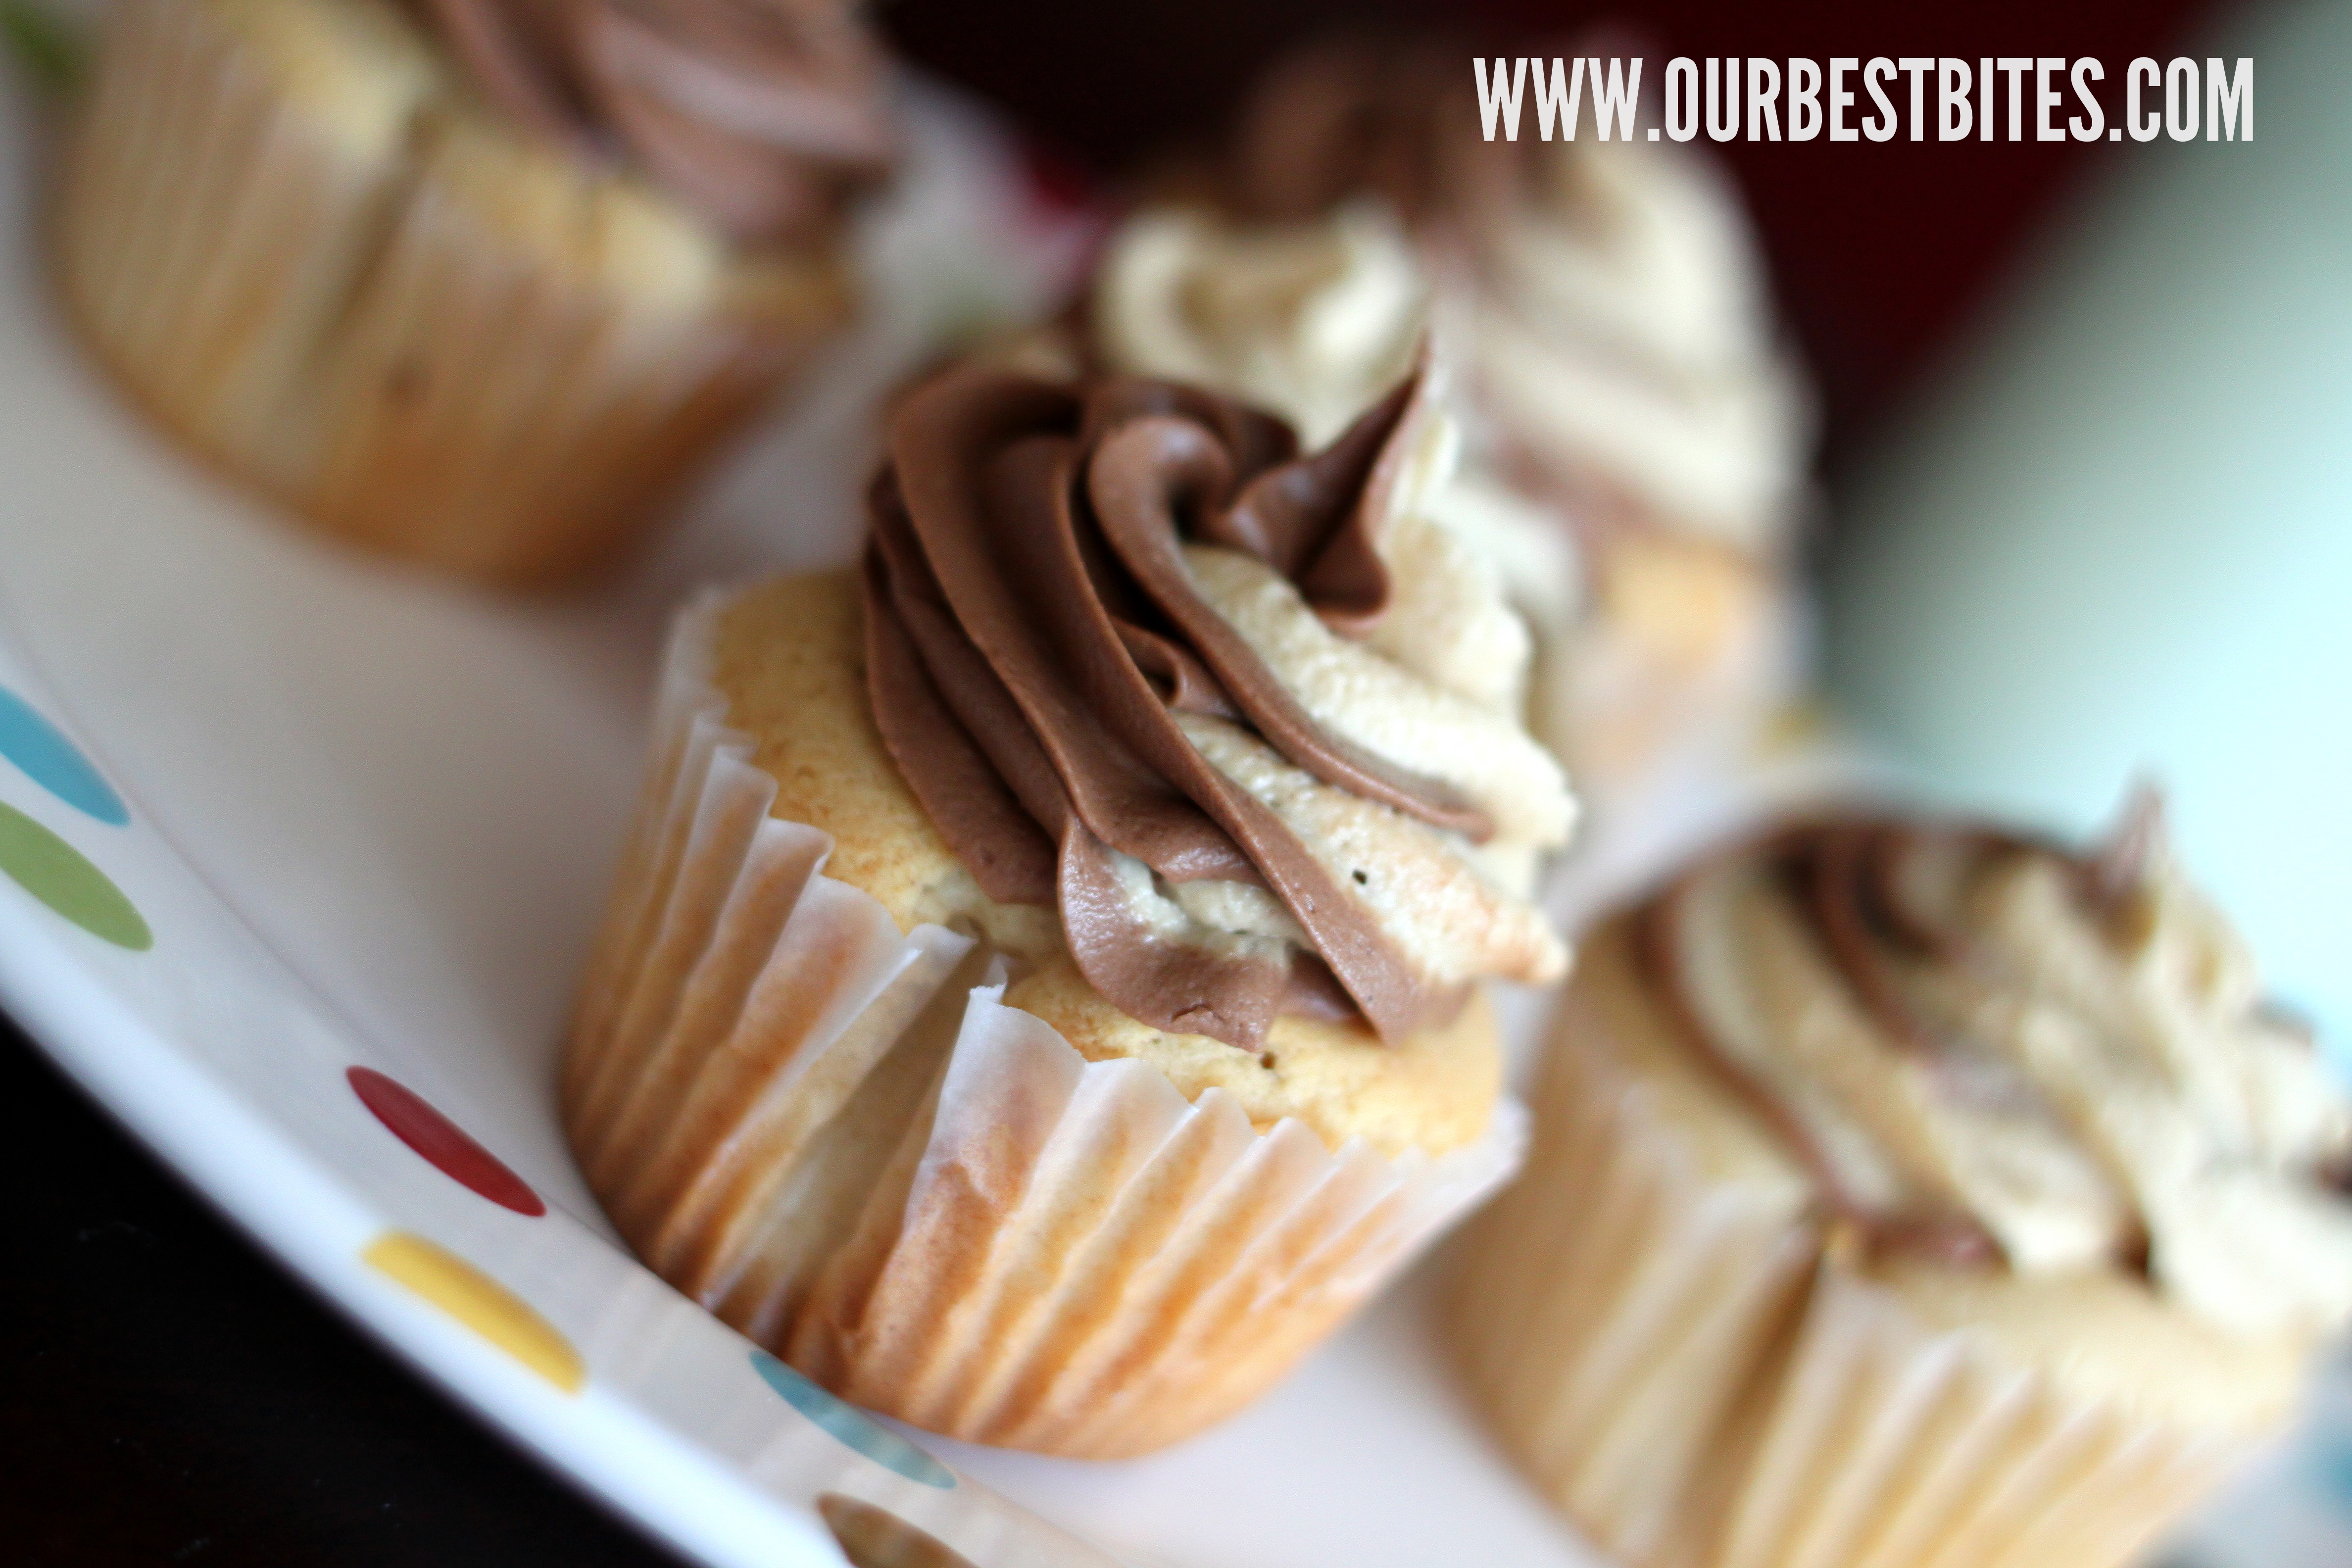 Chocolate Peanut Butter Cup Cupcakes - Our Best Bites